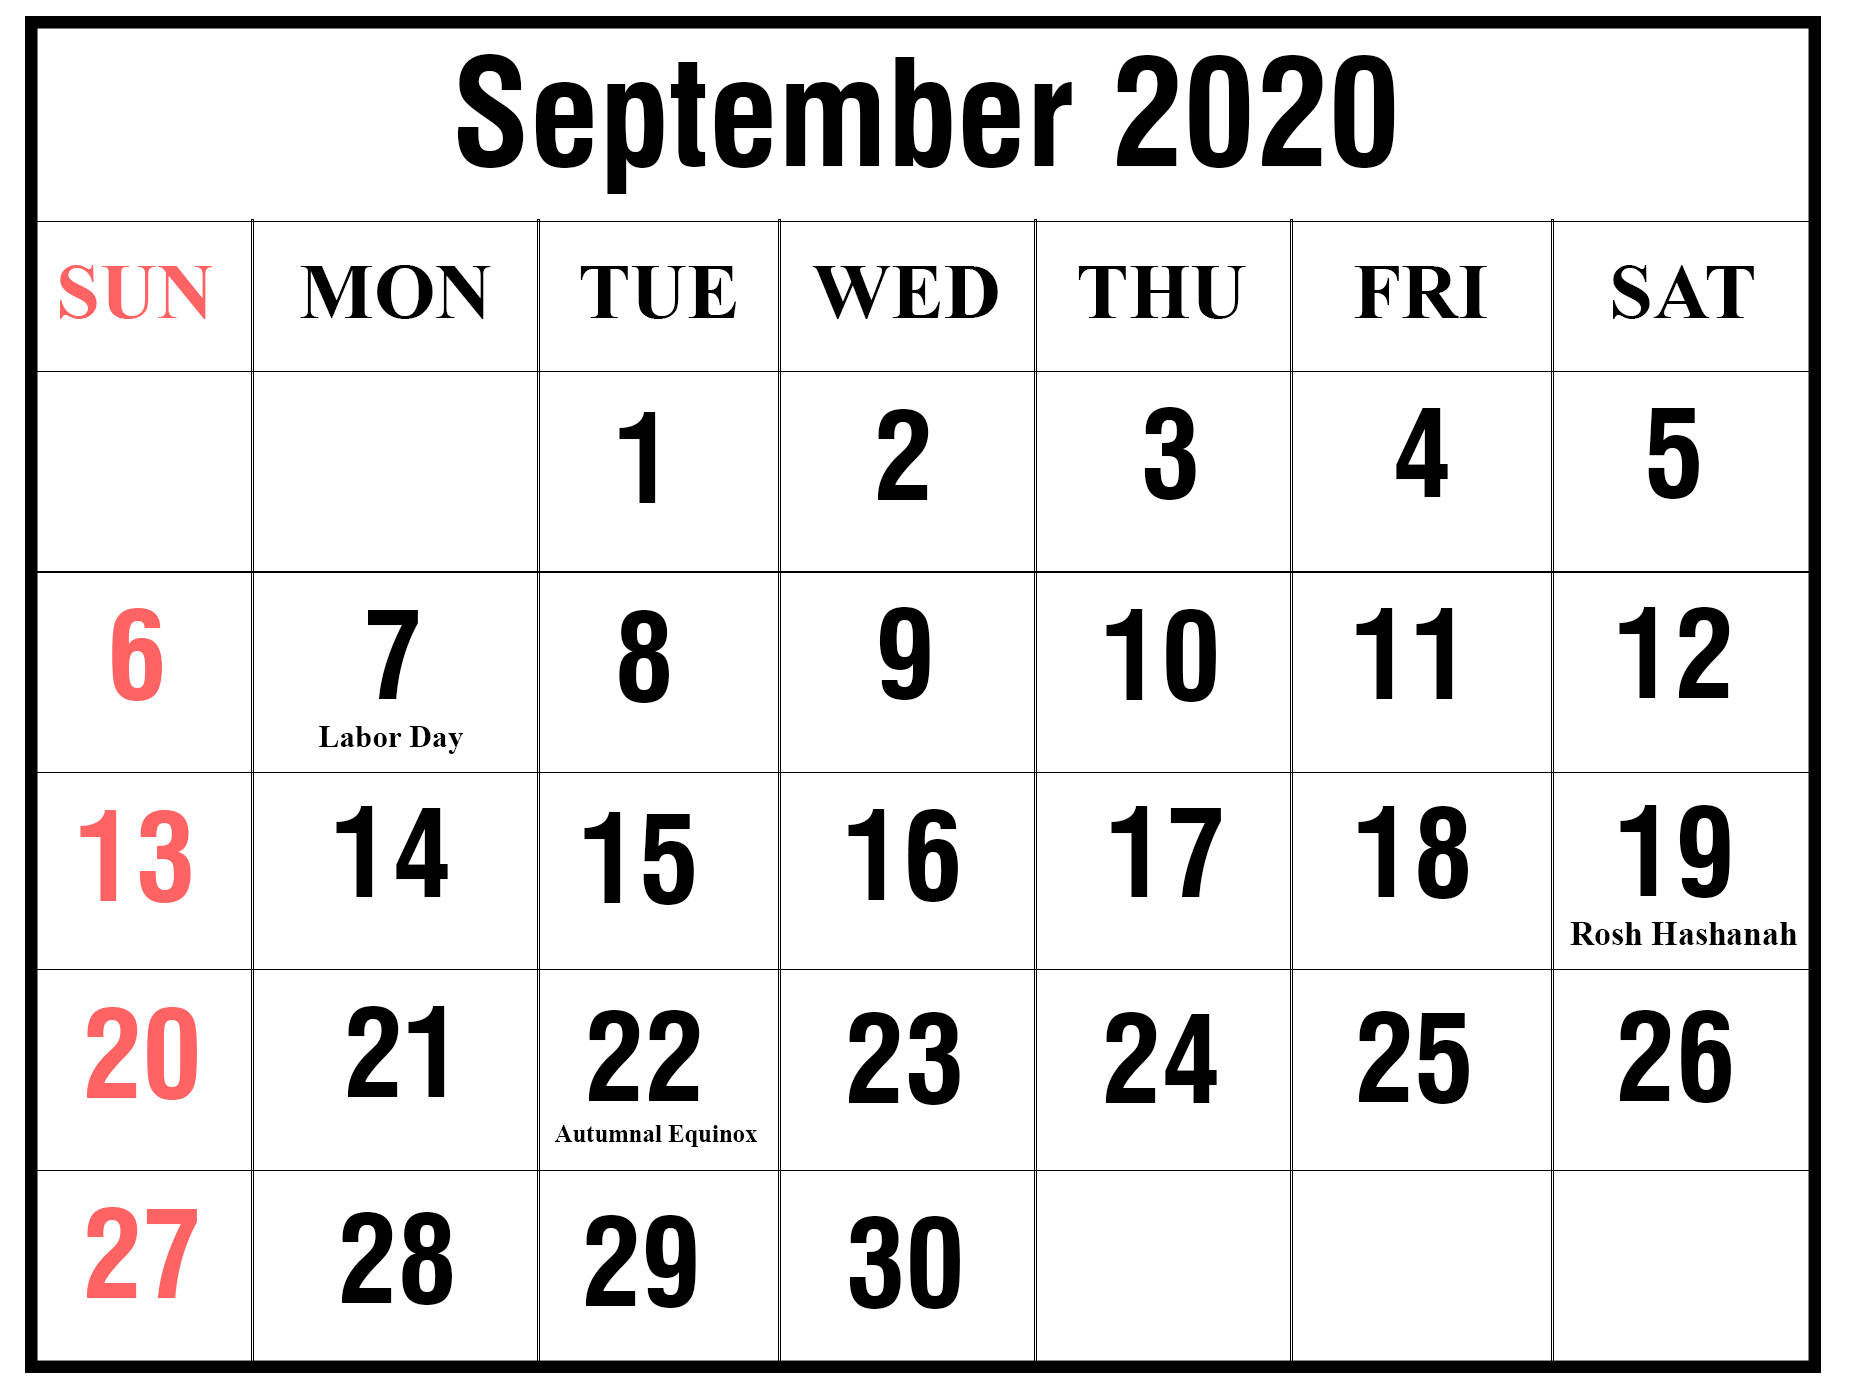 September 2020 Calendar Printable - Ko-Fi ❤️ Where